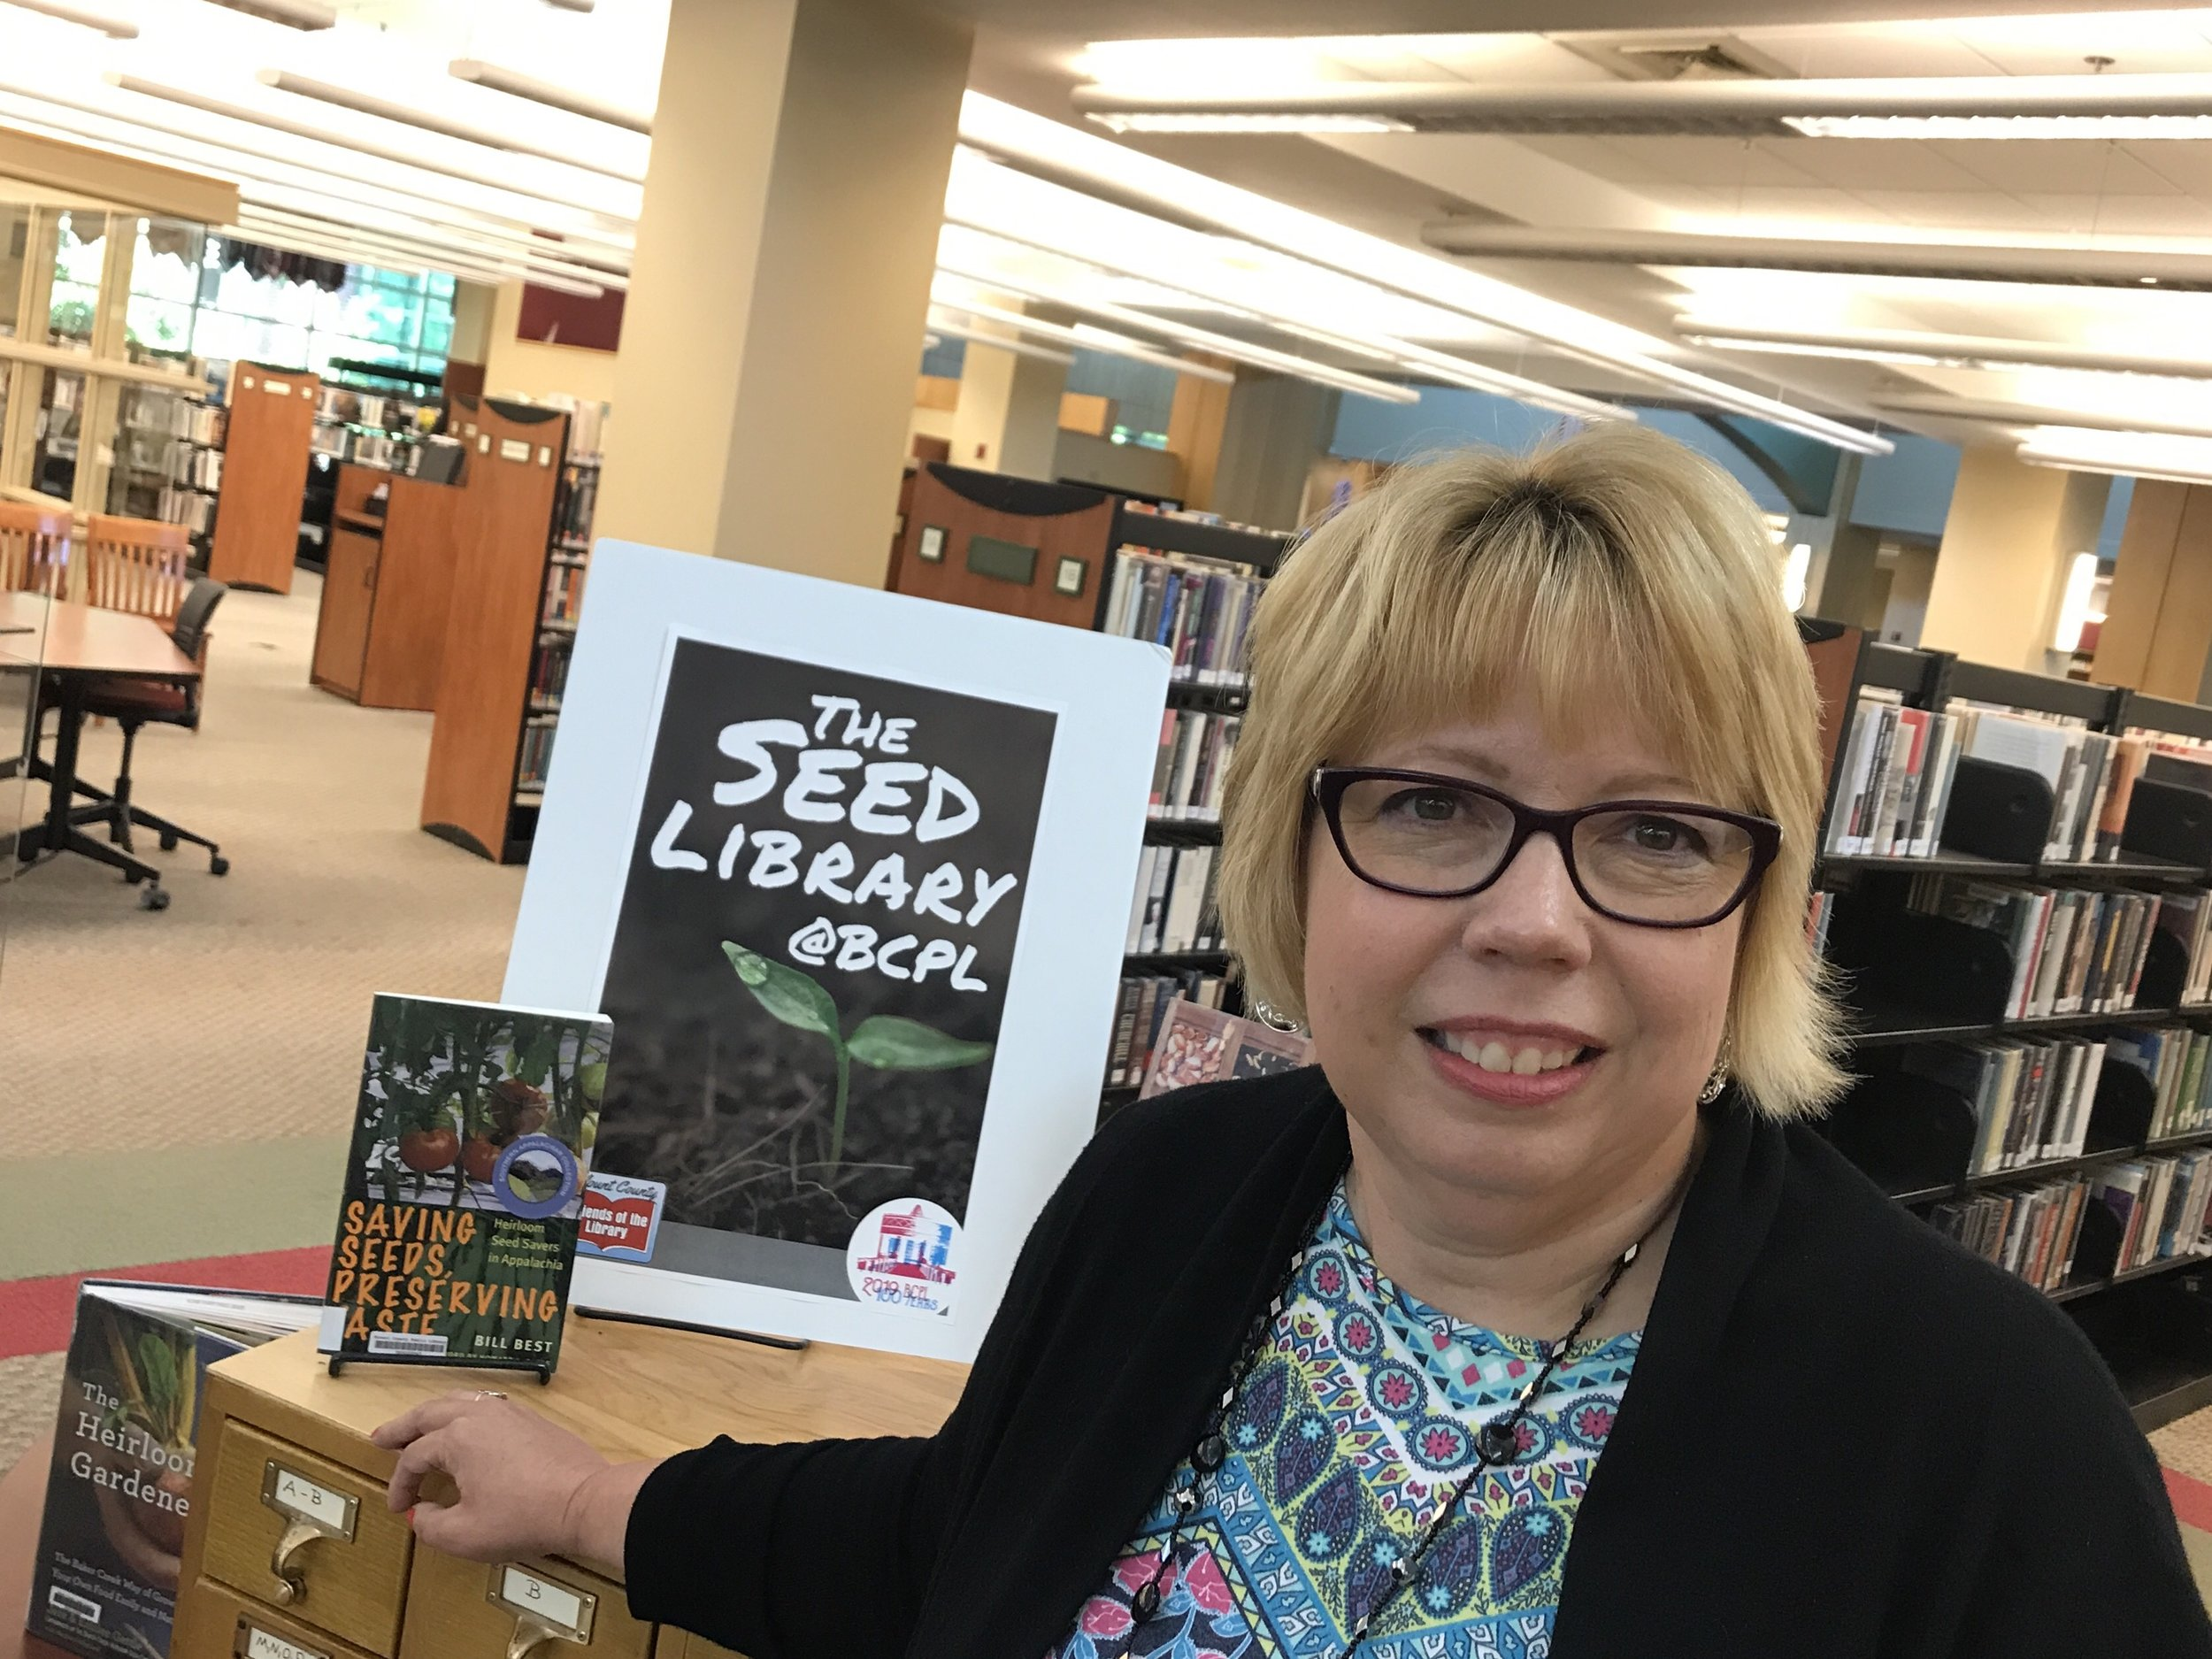 Sheila Pennycuff of the Blount County Public Library Seed Library:  https://www.blounttn.org/1464/Seed-Library